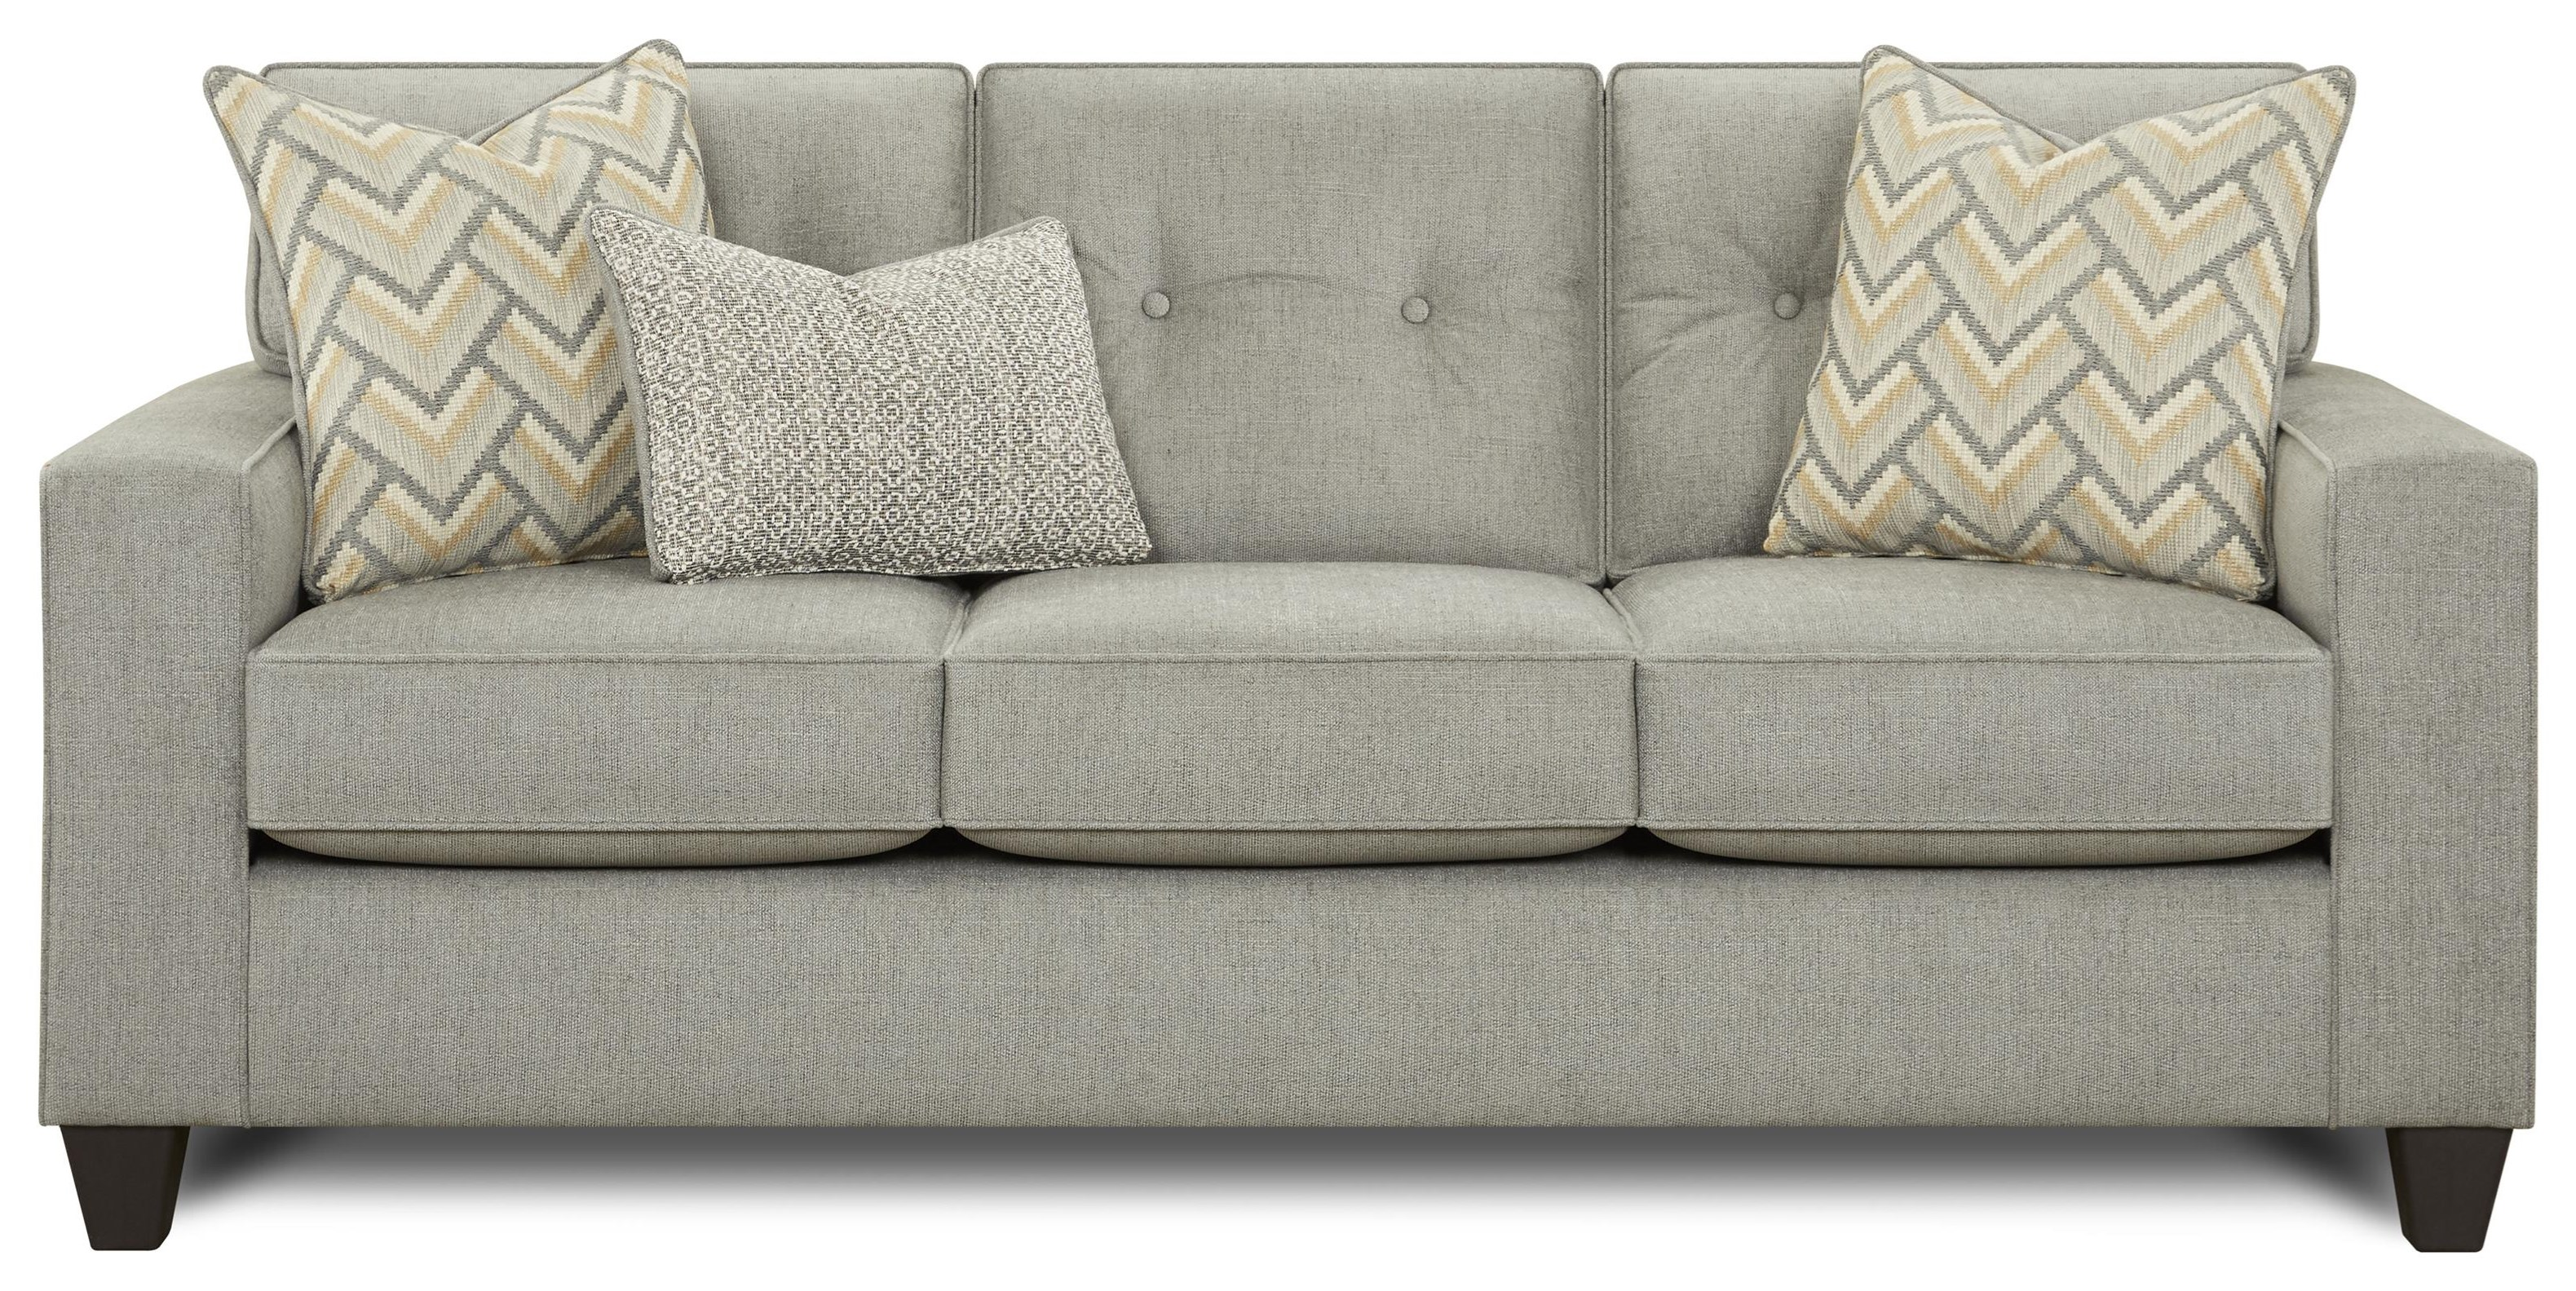 54-00 Sofa by Kent Home Furnishings at Johnny Janosik